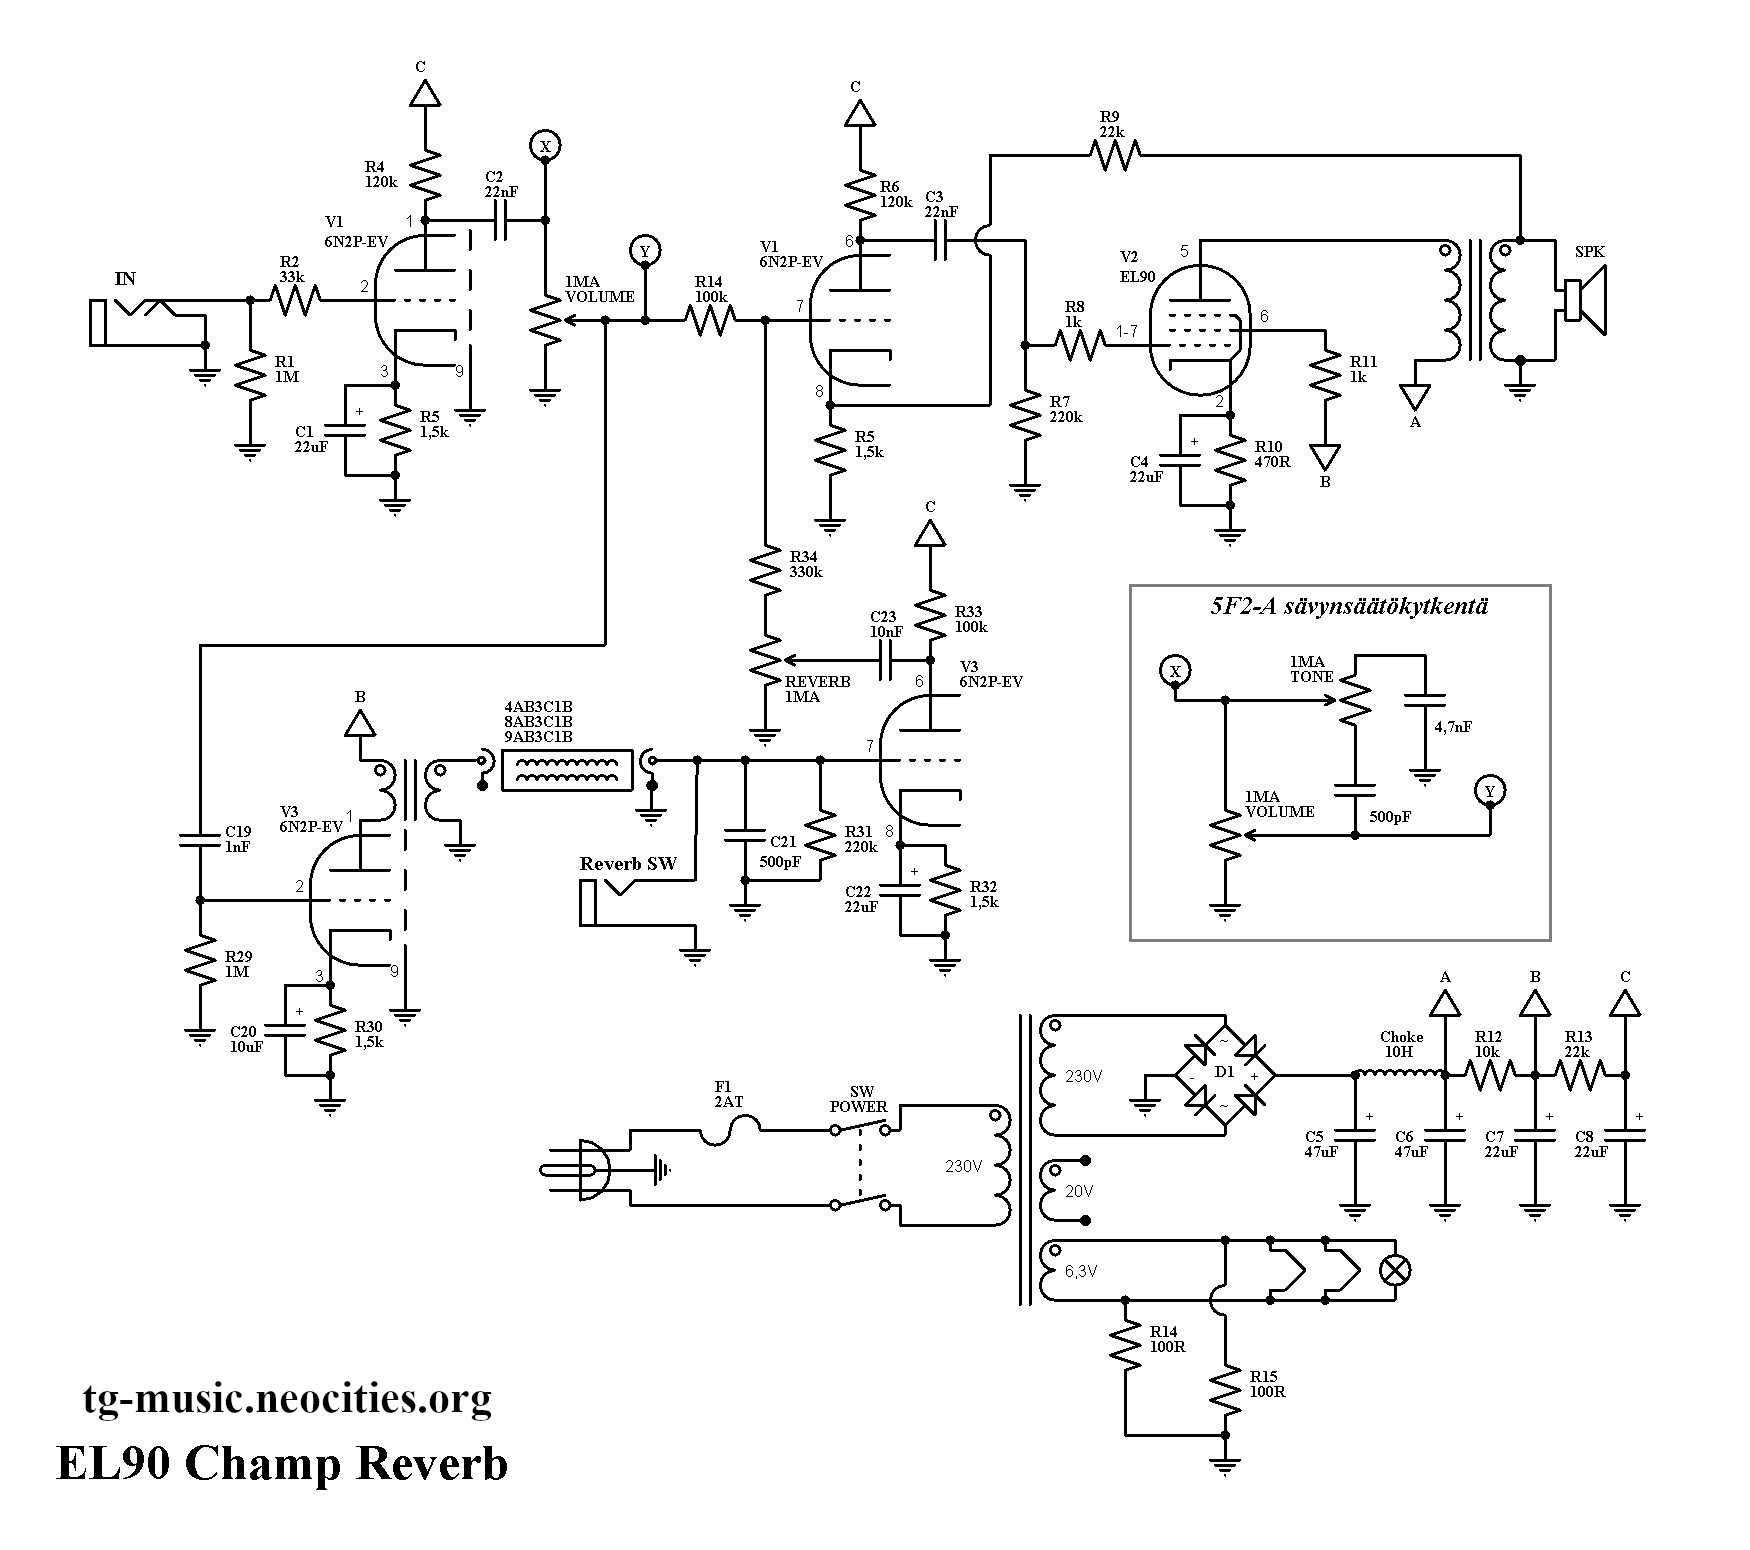 Links for music and guitar rs on ef86 preamp schematic, fender twin reverb schematic, carrier furnace schematic, marshall schematic, ac15 schematic, fender frontman 212r schematic, fender bassman 50 schematic, fender 5150 schematic, ac30 schematic, silvertone 1482 schematic, mxr phase 100 schematic, mesa boogie dual rectifier schematic, amp schematic, matchless lightning schematic, silvertone 1481 schematic, fender stage 160 schematic, roland jc120 schematic, pignose g40v schematic, speakers schematic,